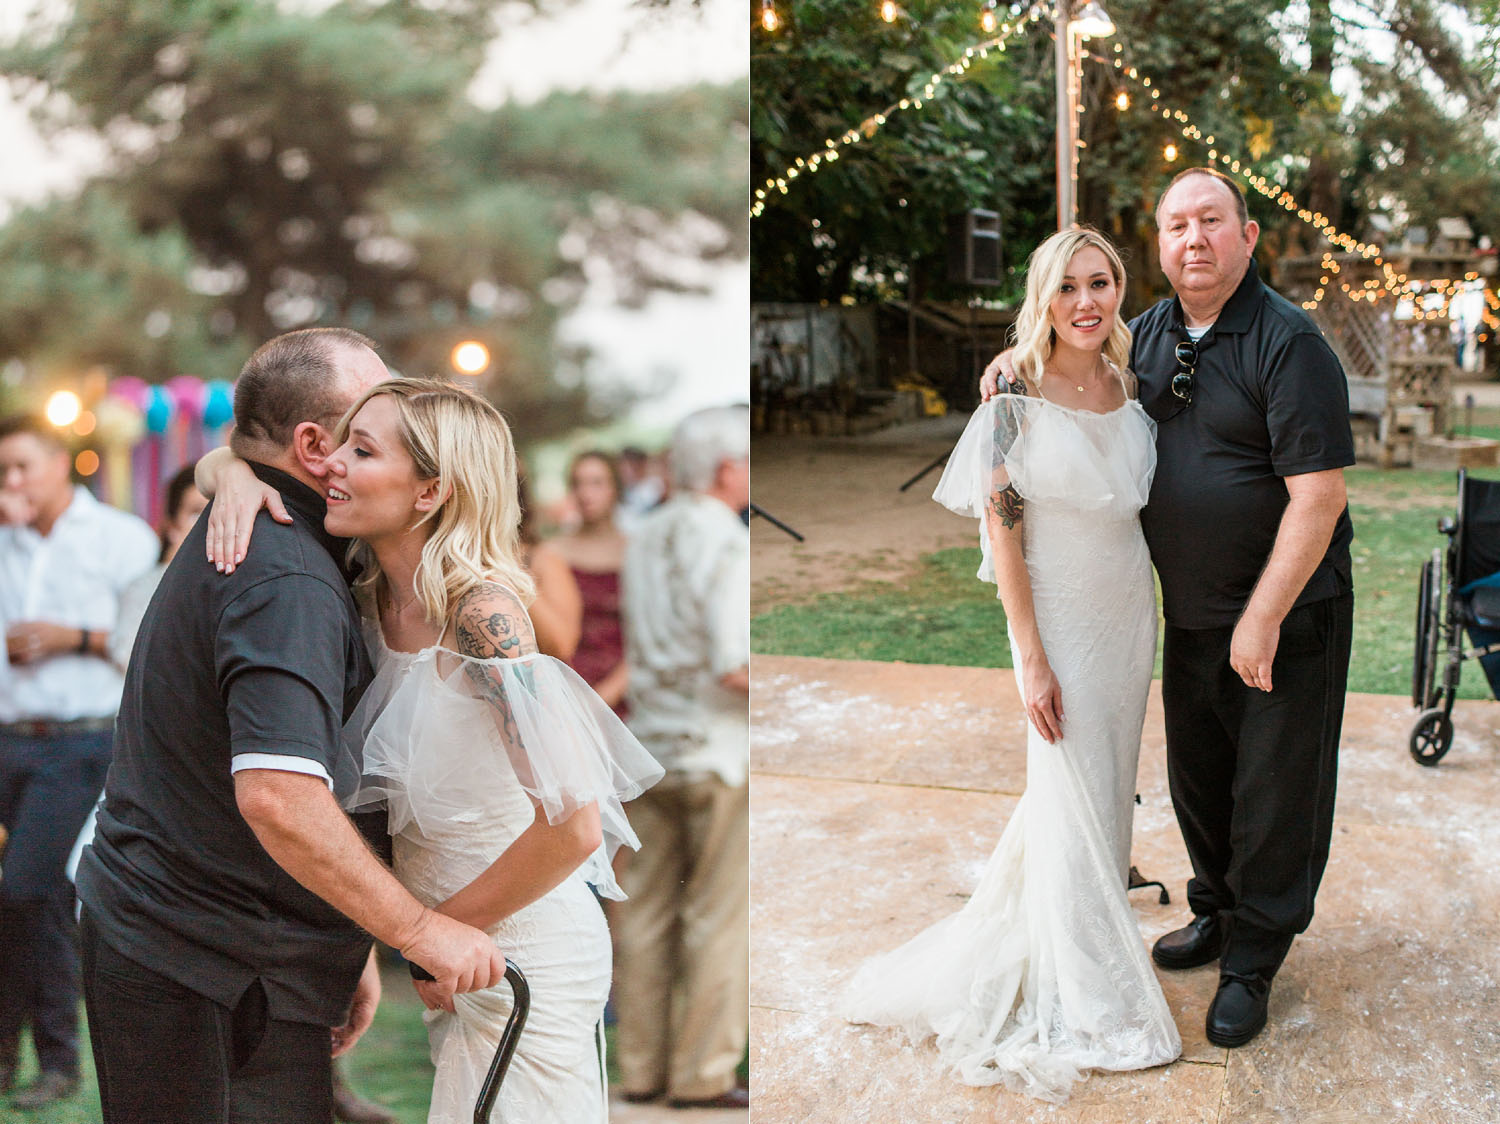 The Photege - Elegant Boho Wedding on Suburu Farm in Bakersfield California- Cassie and Darin Buoni-3071